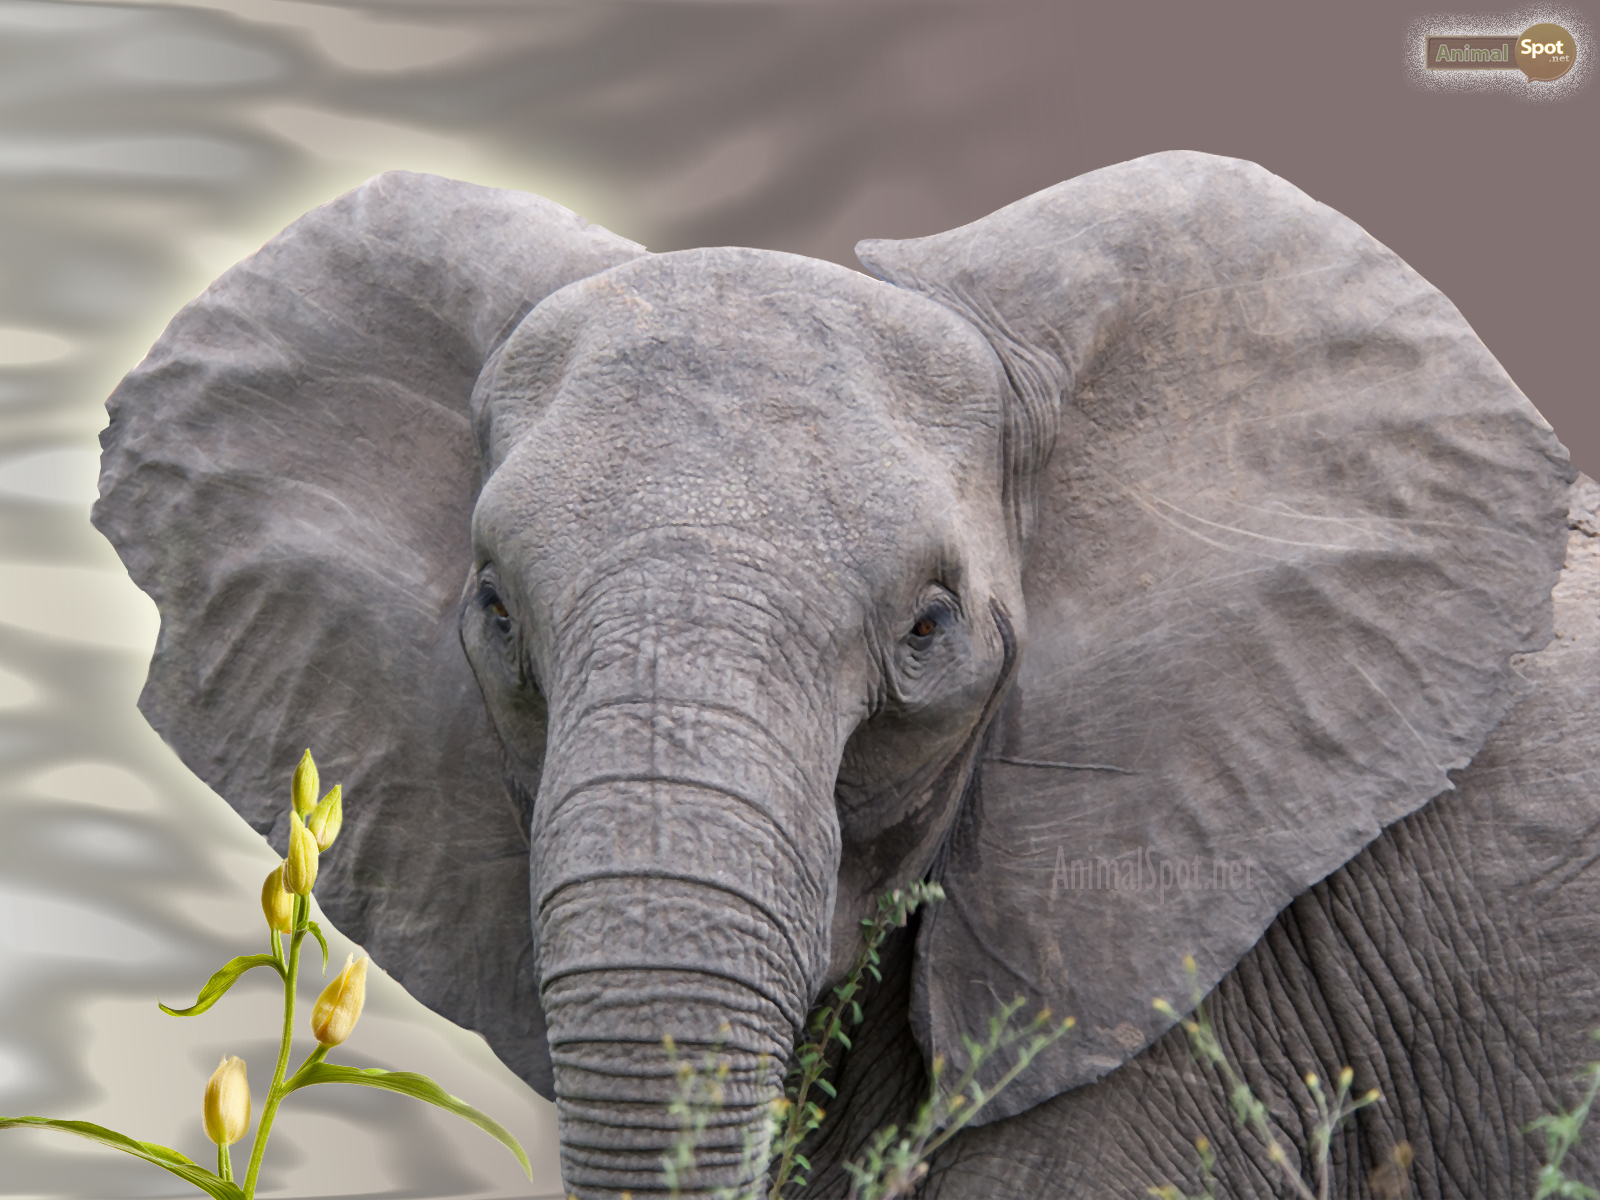 elephant wallpapers animal spot